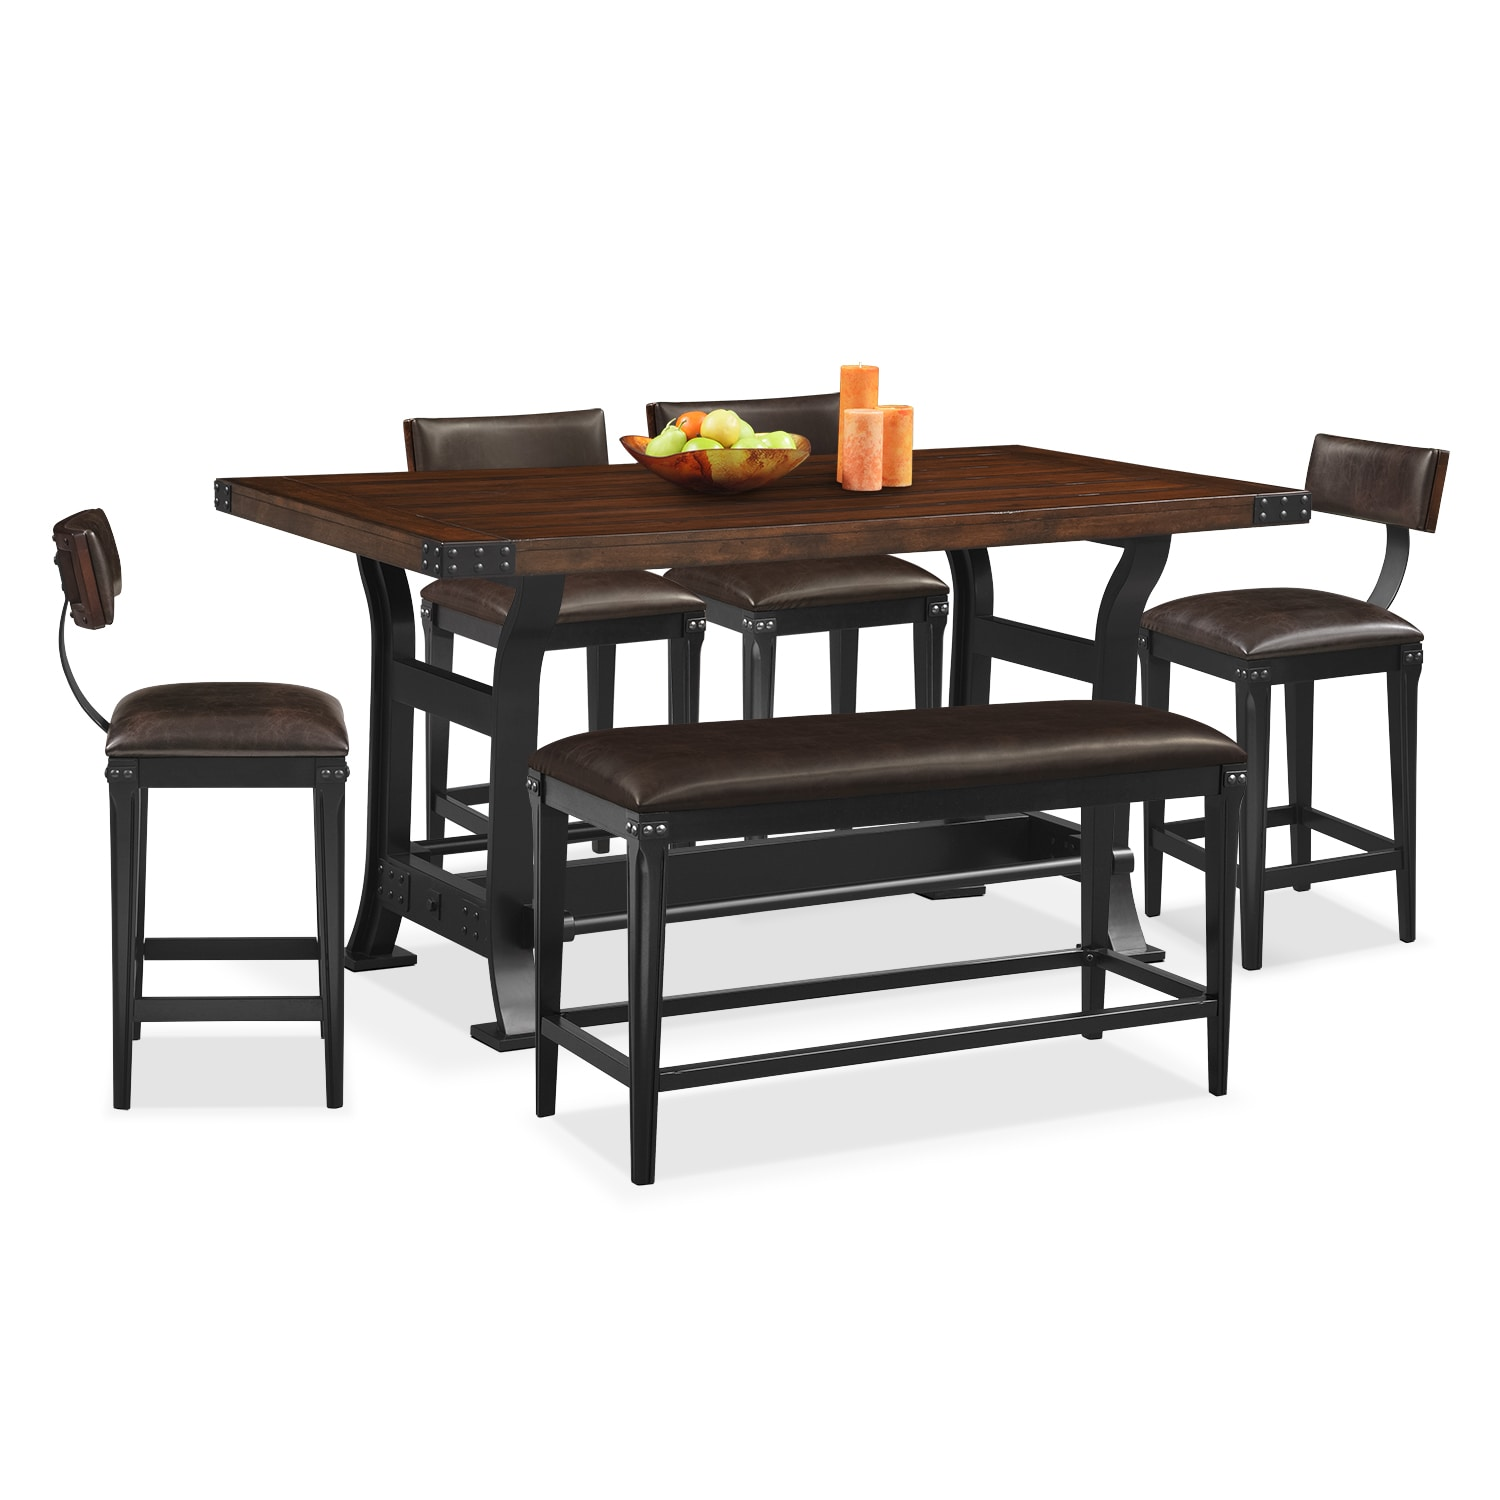 Dining Room Furniture - Newcastle 6 Pc. Counter-Height Dining Room w/ 4 Stools and Bench